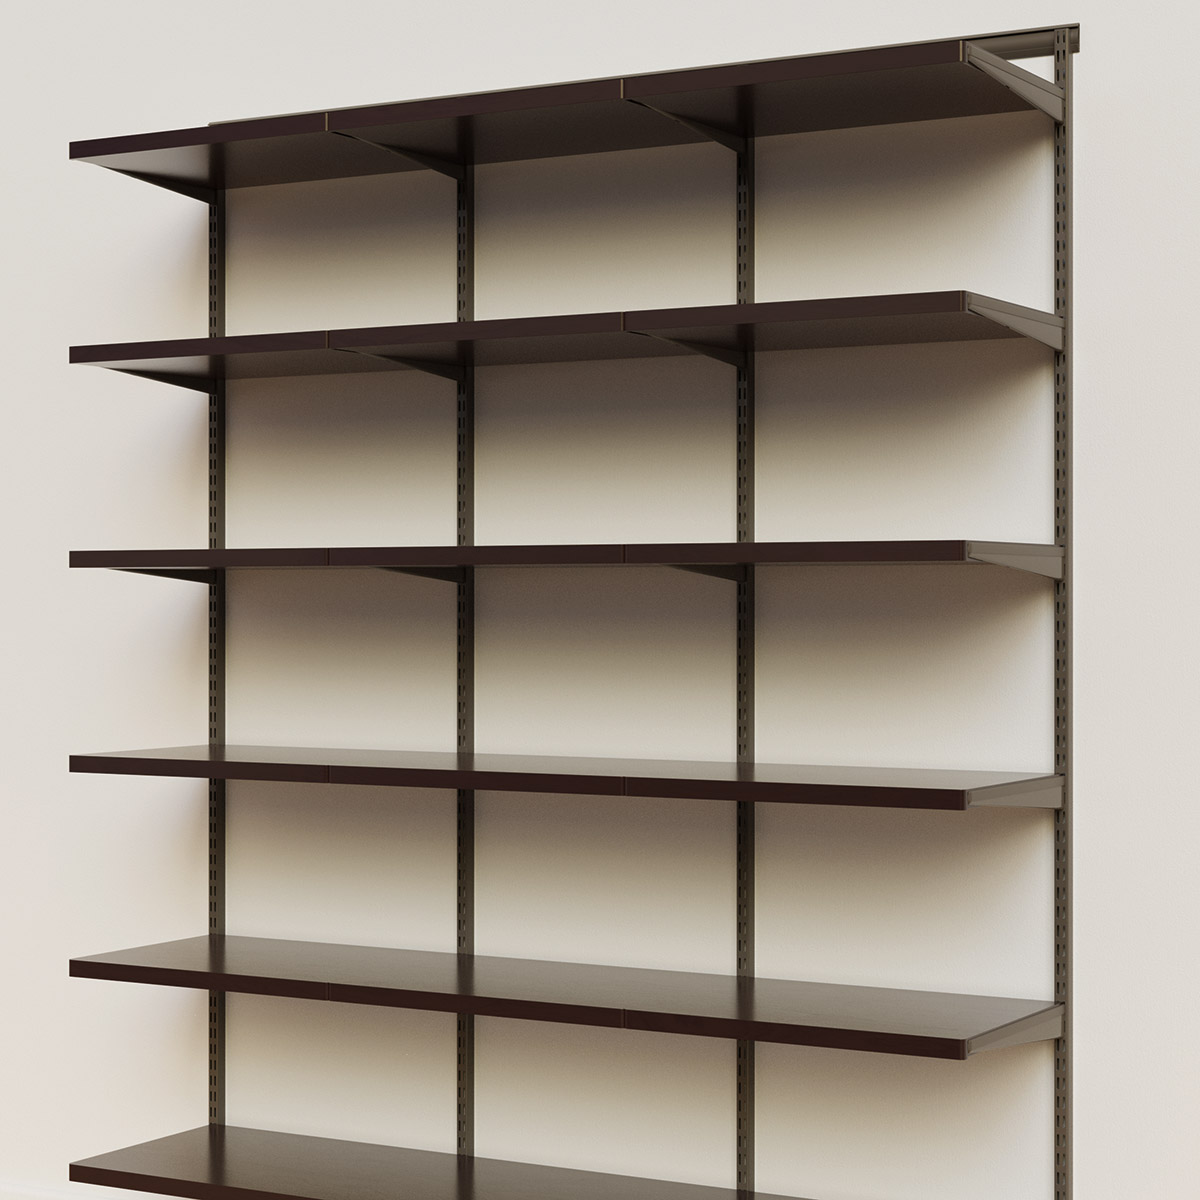 Elfa Décor 6' Graphite & Walnut Basic Shelving Units for Anywhere